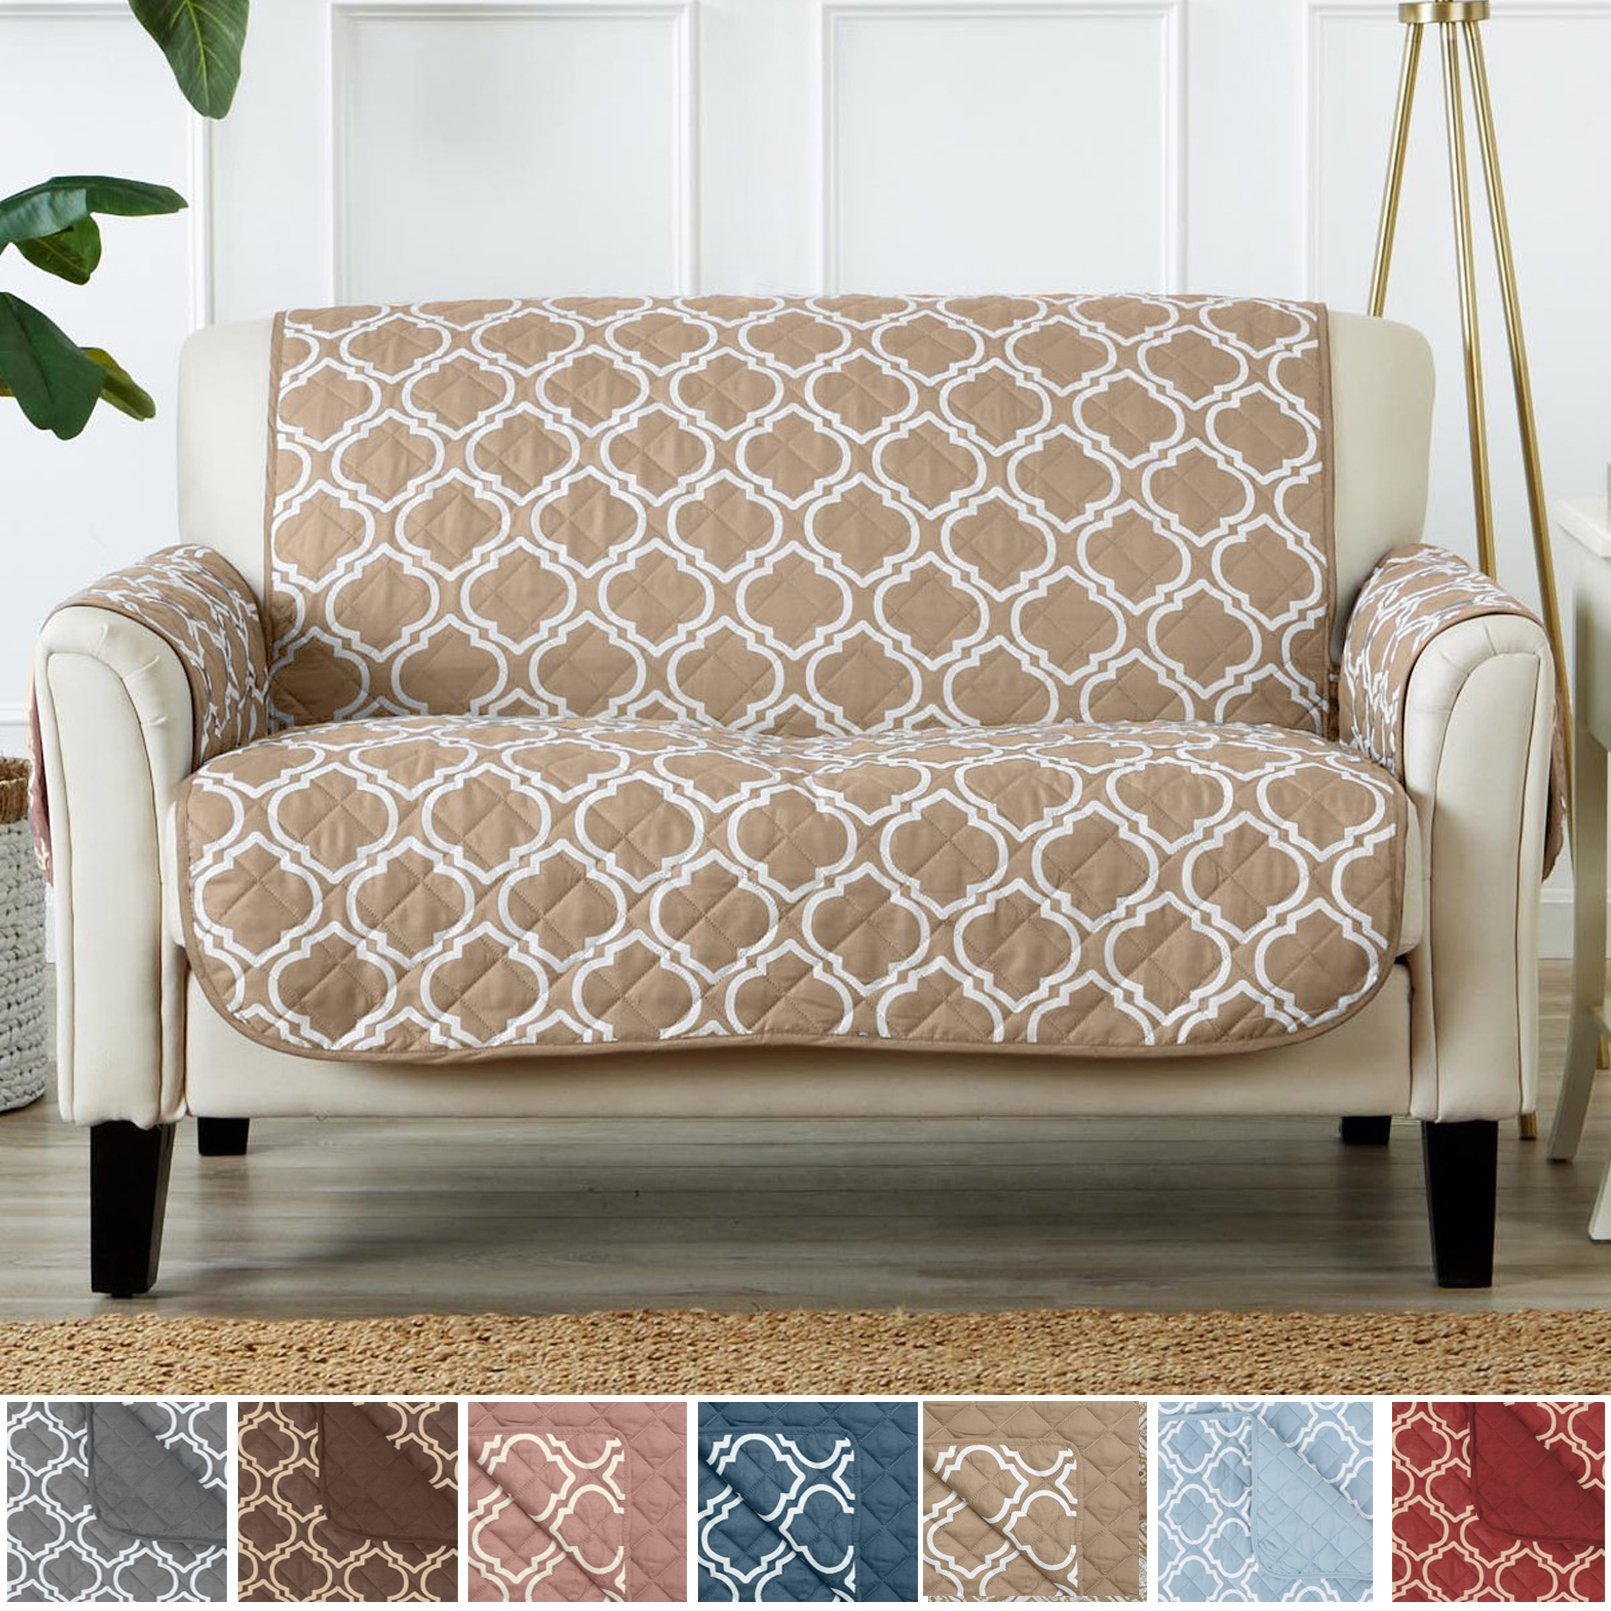 Home Fashion Designs Adalyn Collection Deluxe Reversible Quilted Furniture Protector. Beautiful Print on One Side/Solid Color on the Other for Two Fresh Looks. By Brand. (Loveseat, Lattice Taupe) by Home Fashion Designs